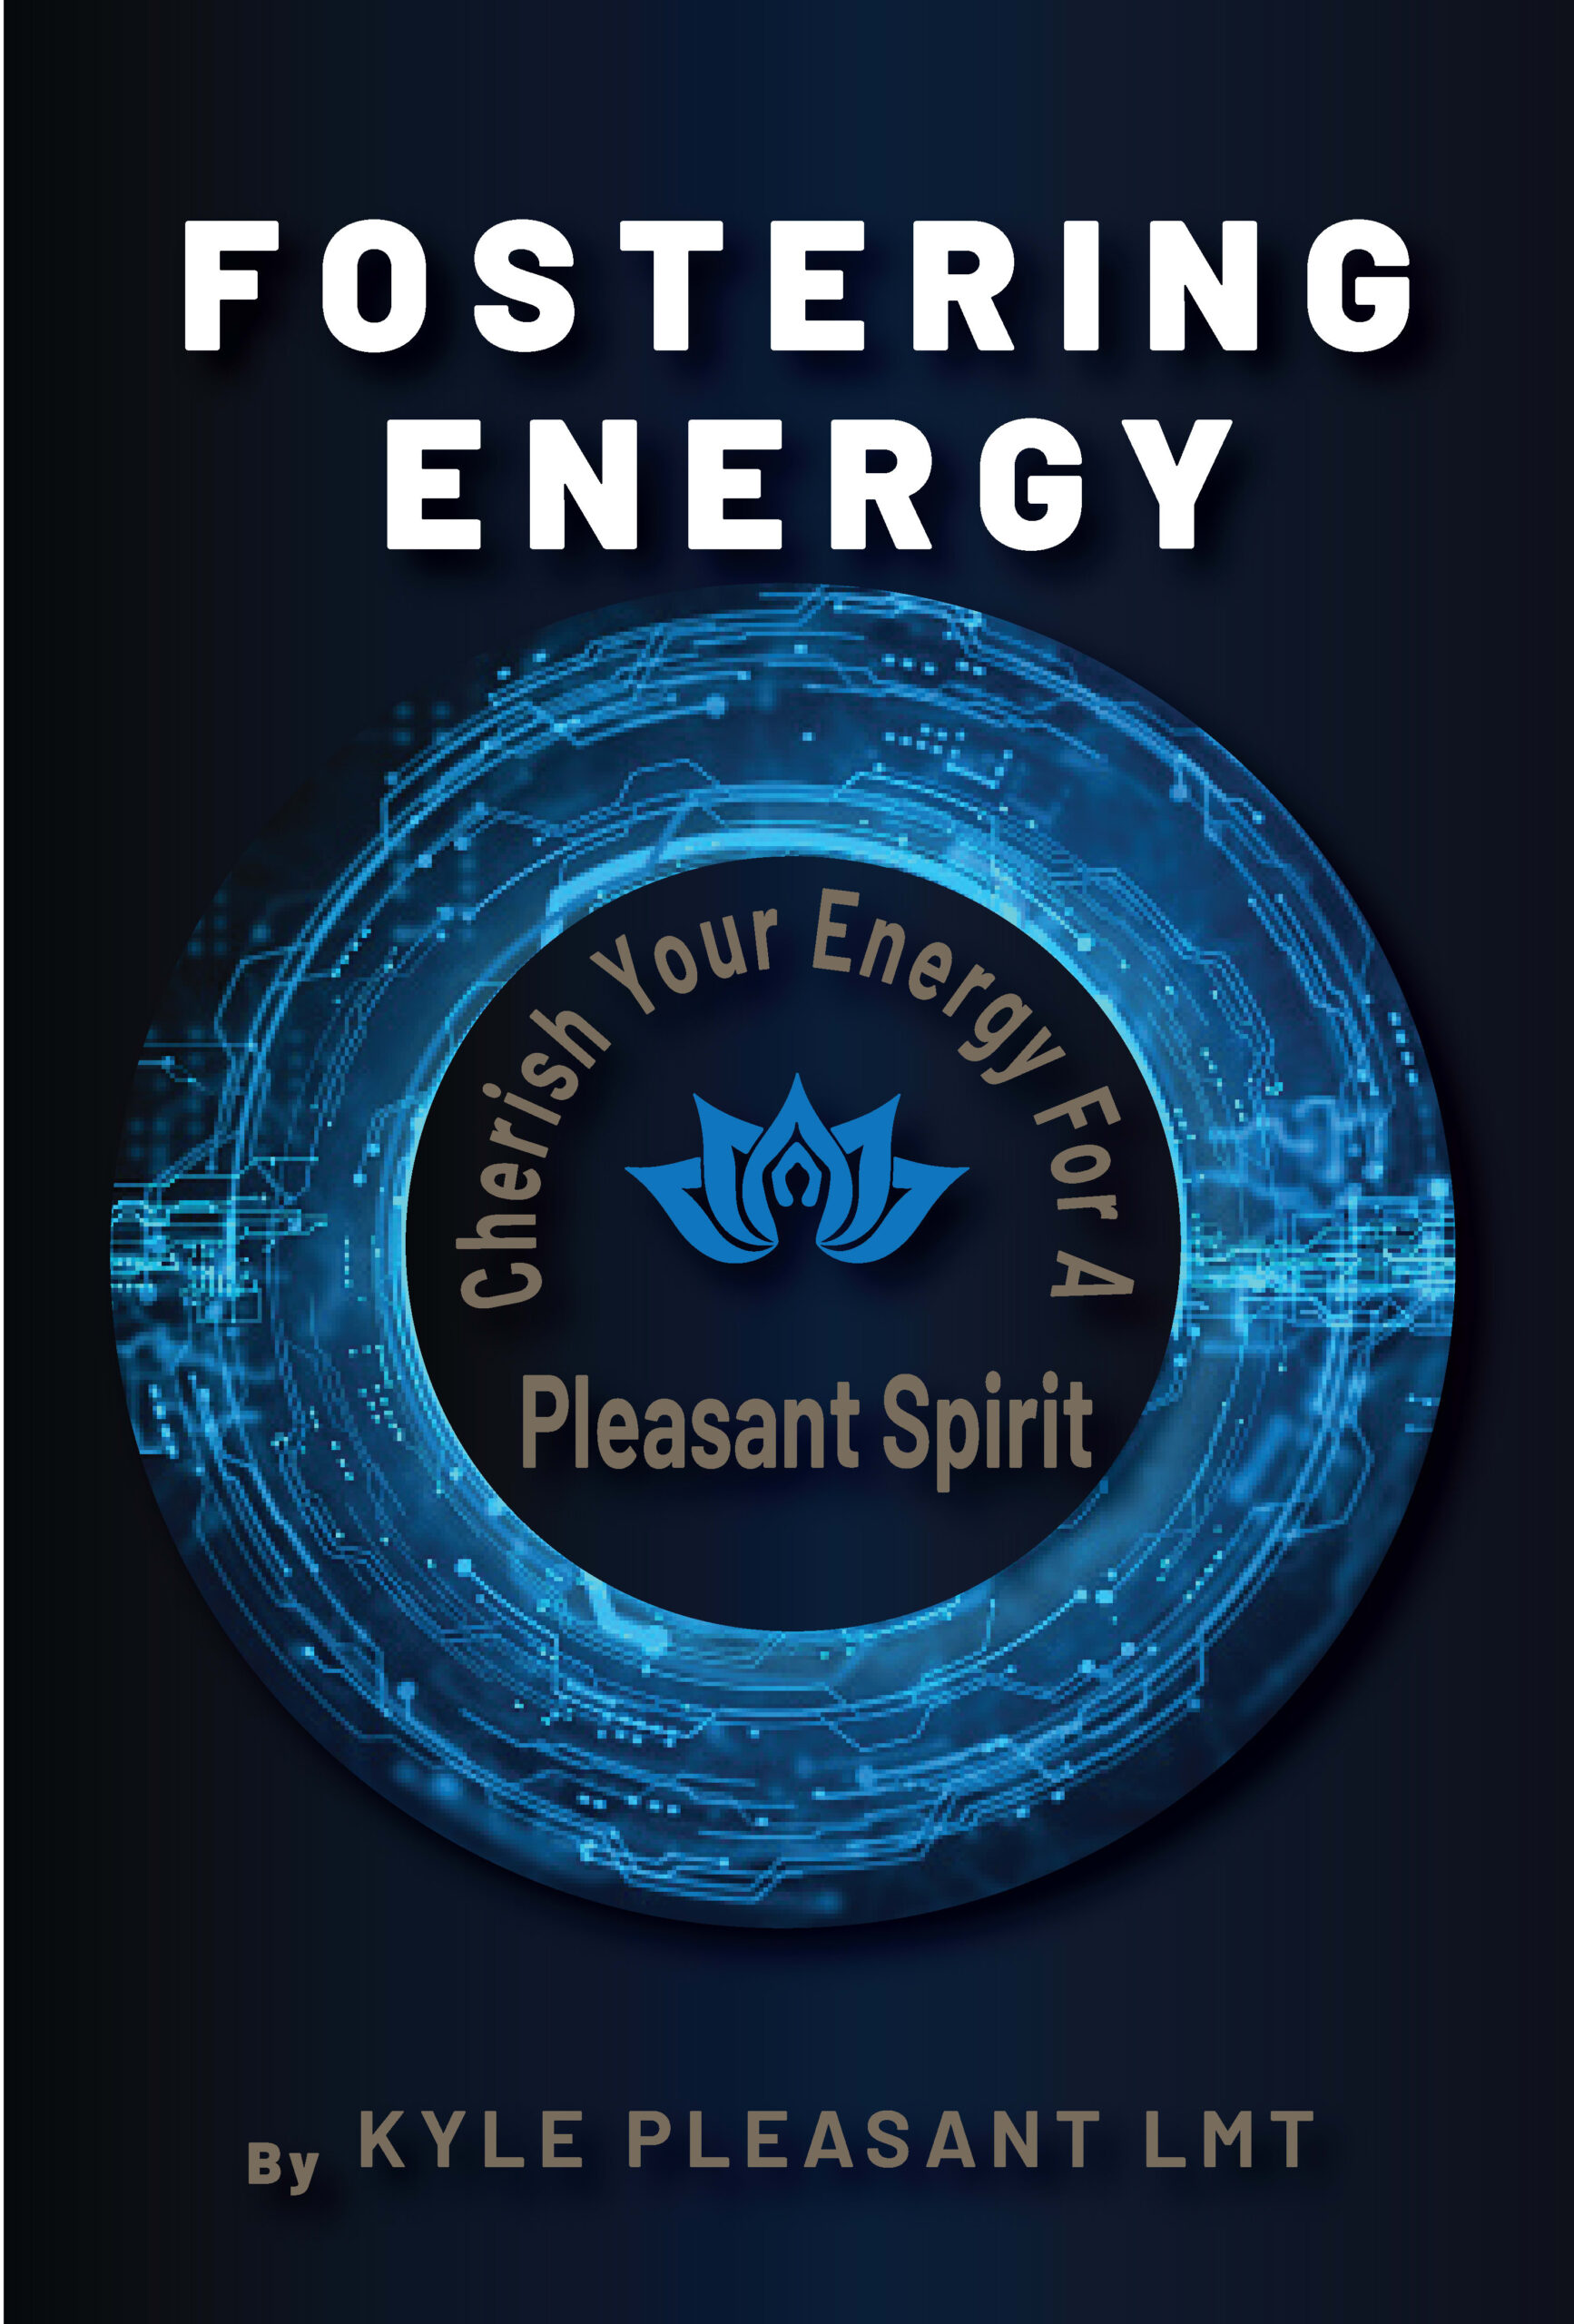 Fostering Energy by Kyle Pleasant